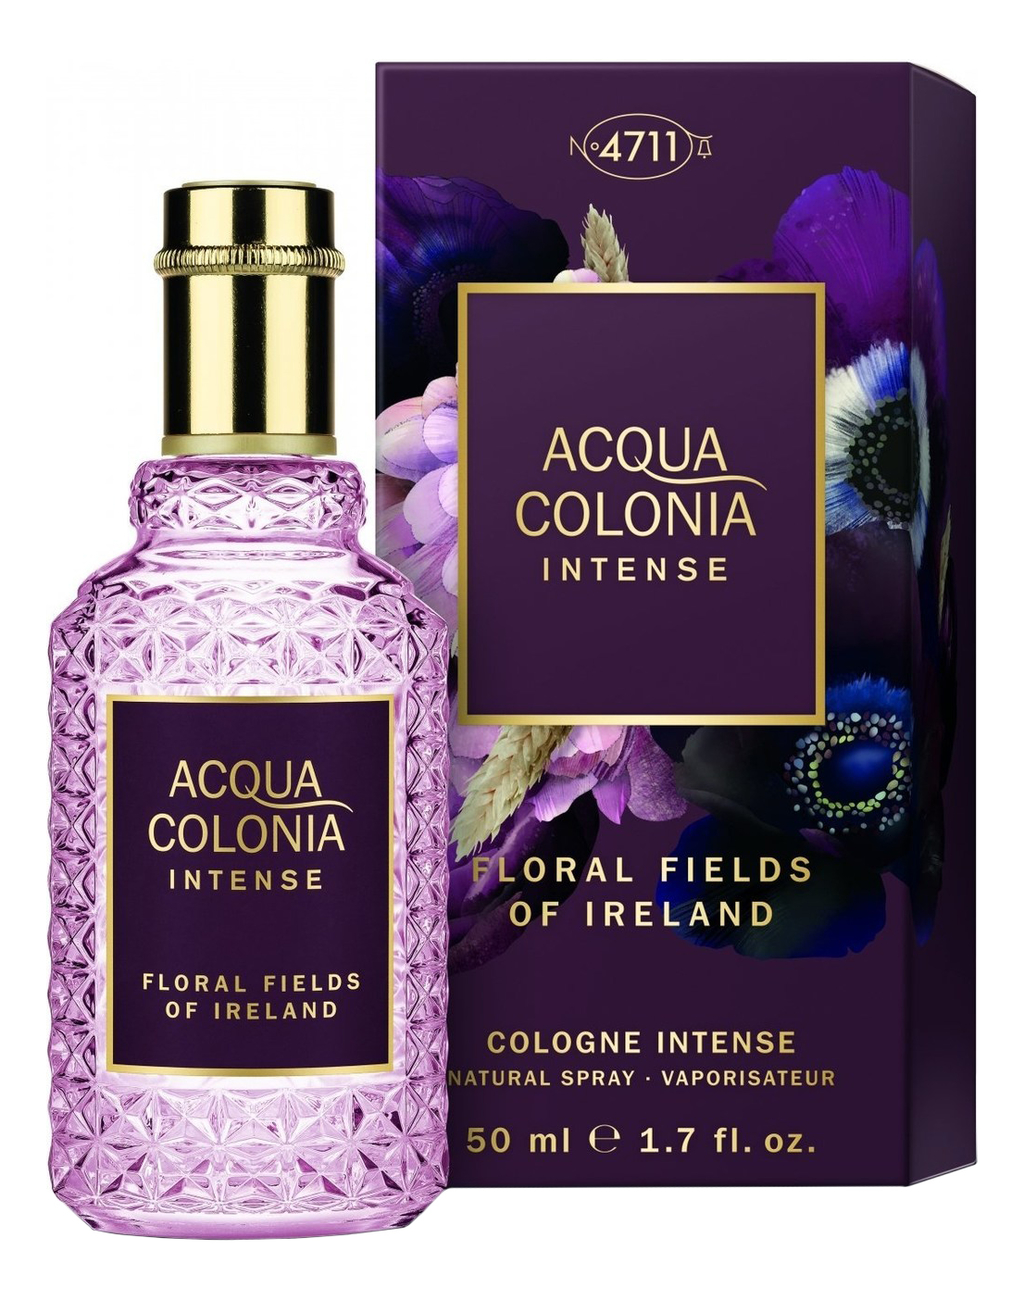 Купить Maurer & Wirtz Acqua Colonia Intense Floral Fields Of Ireland: одеколон 50мл, Maurer & Wirtz Acqua Colonia Intense Floral Fields Of Ireland